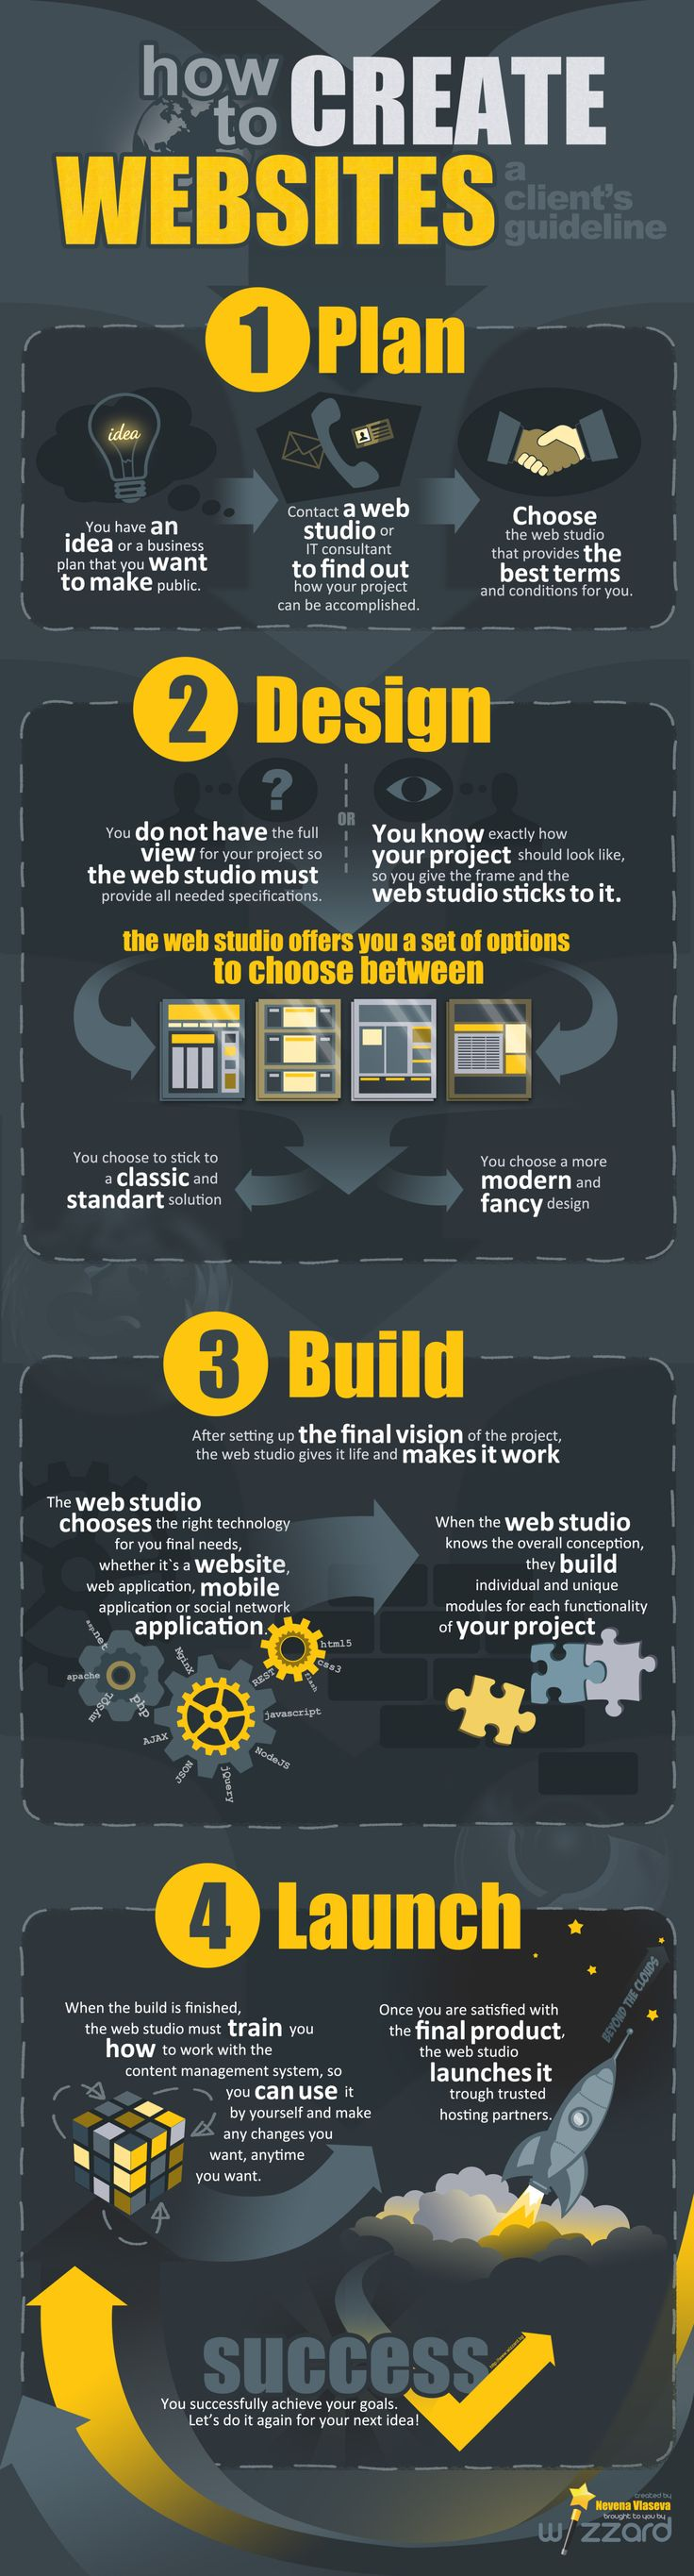 How To Create Websites [INFOGRAPHIC]